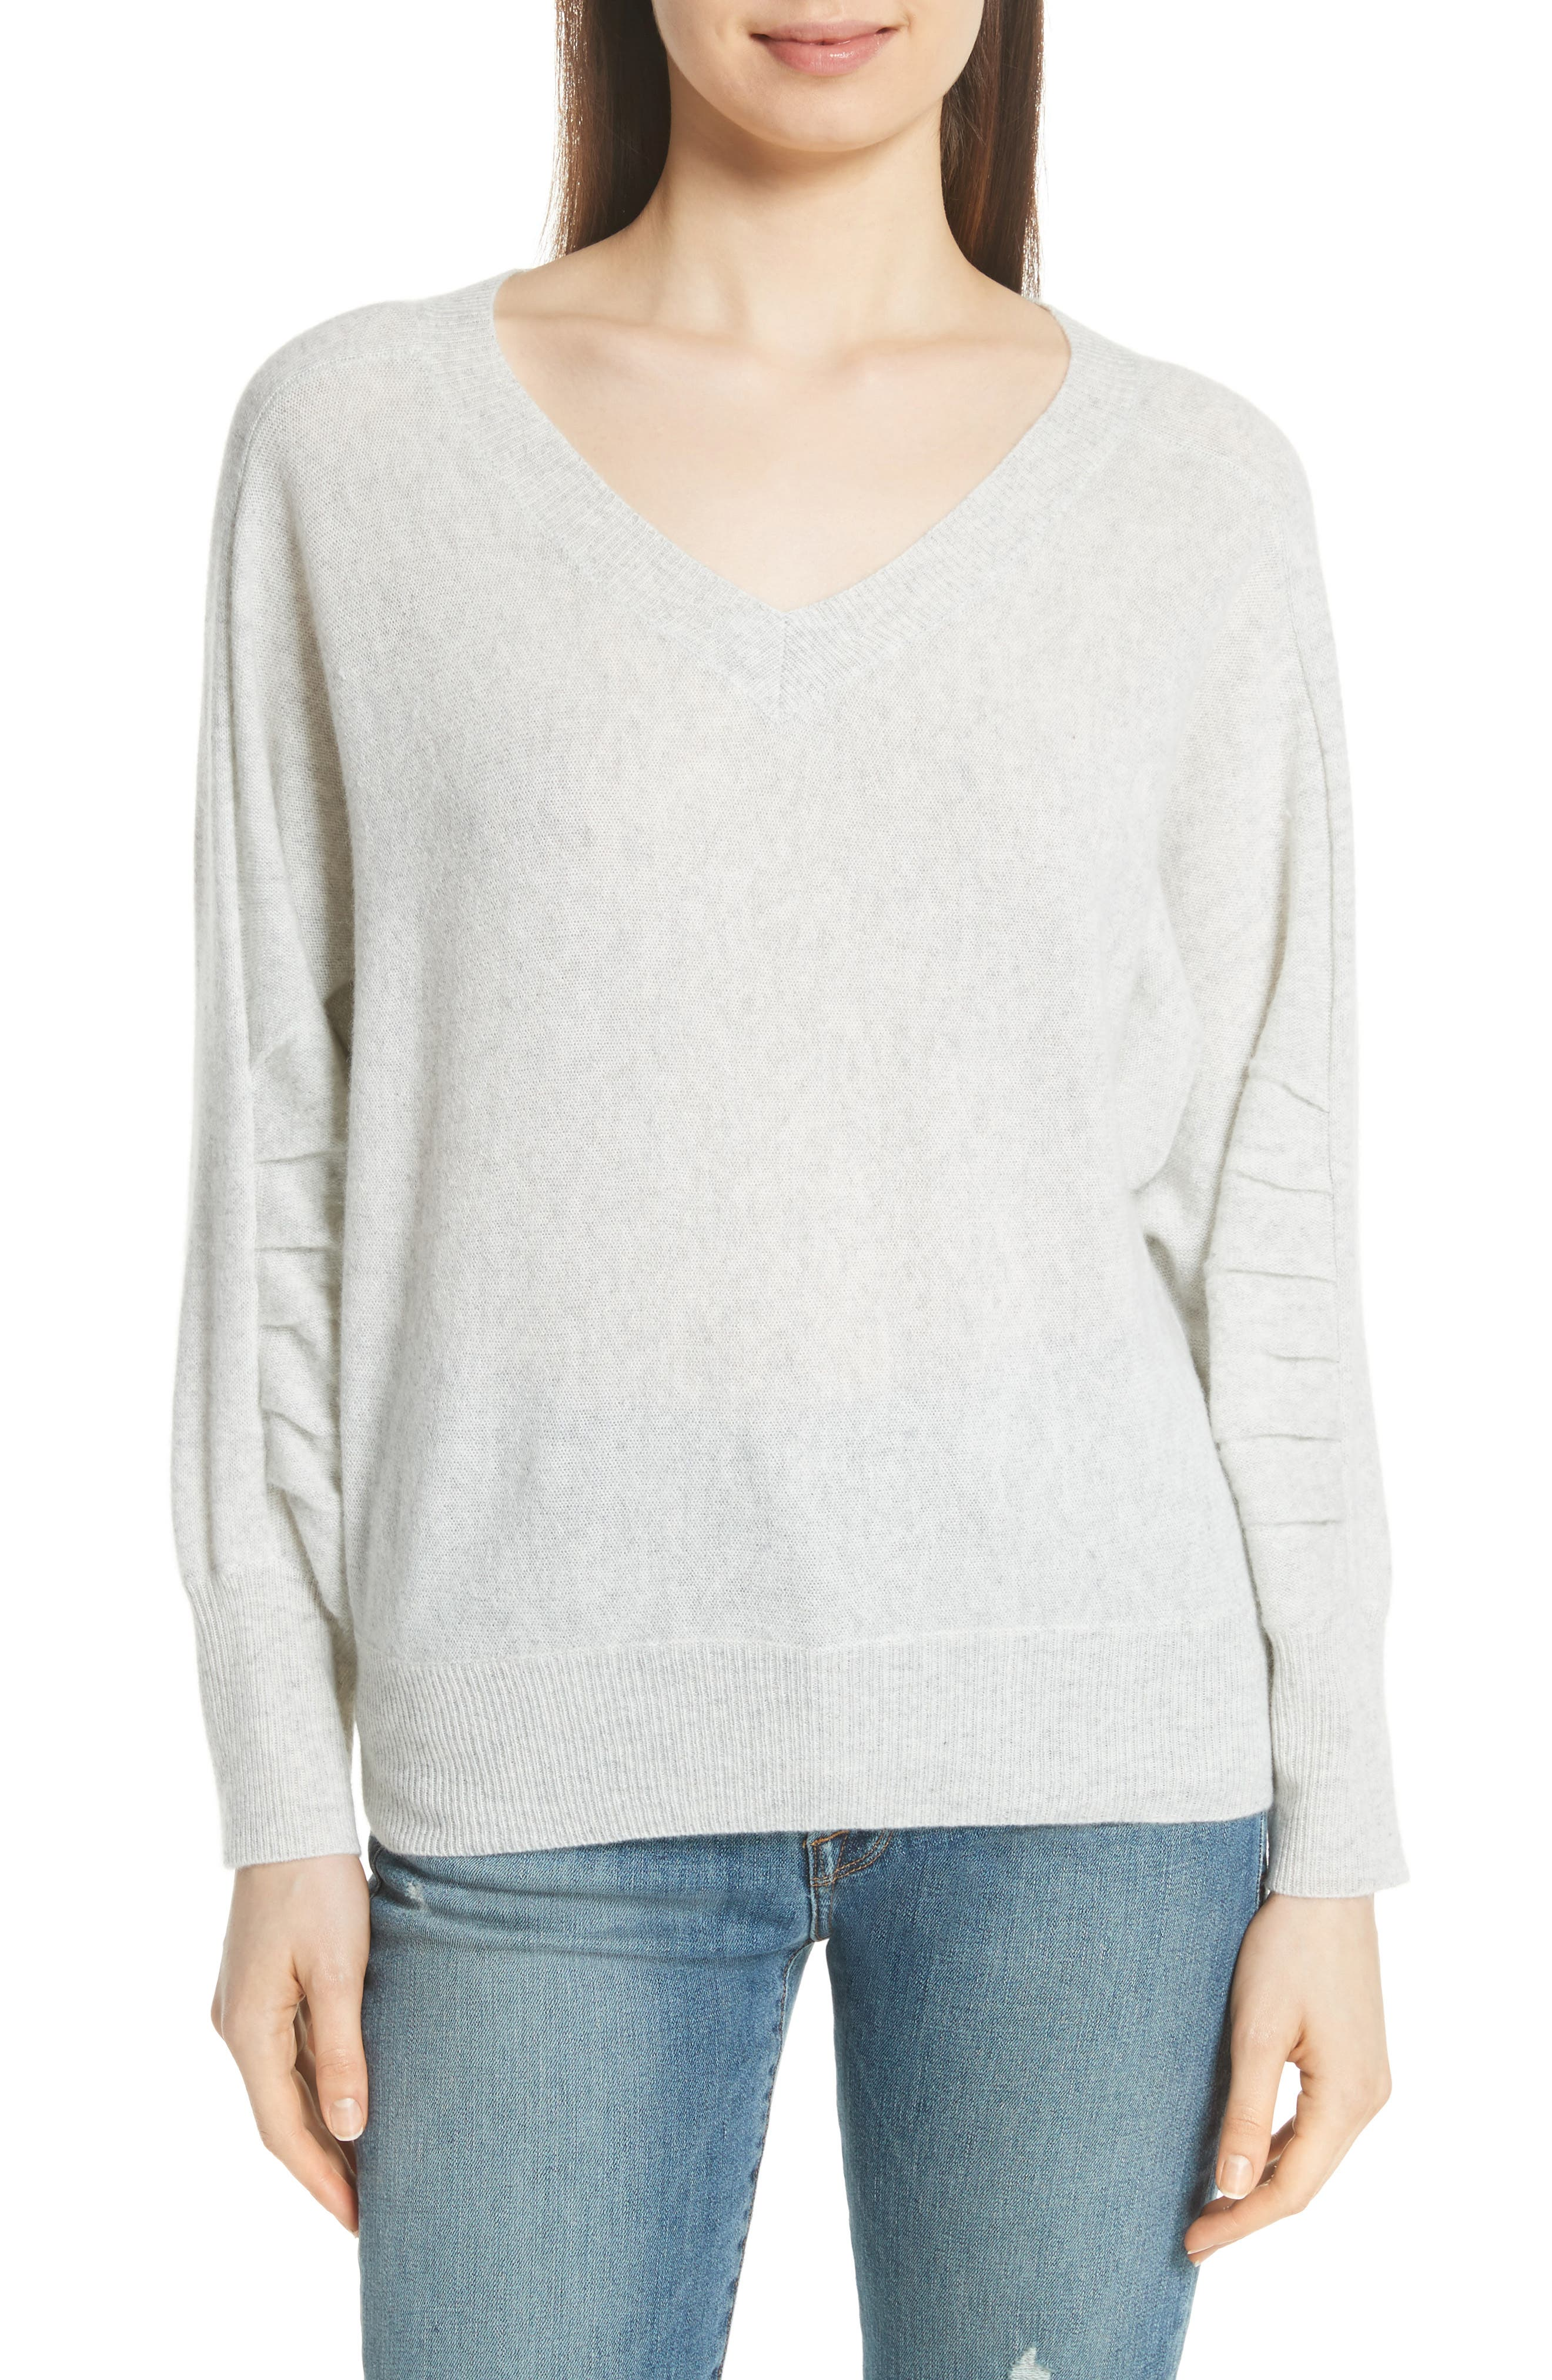 Weller Cashmere Sweater,                         Main,                         color, 100